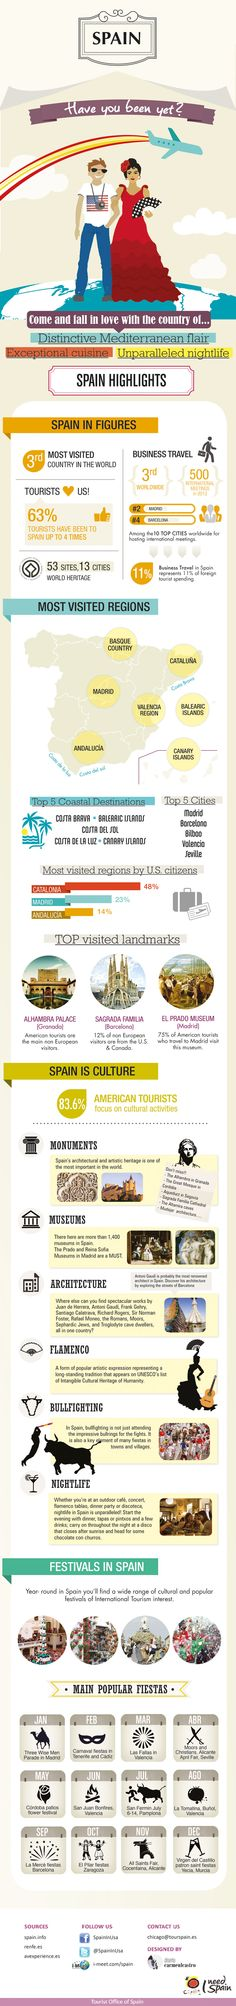 Learn about Spain and its many tourism highlights! Did you know that Spain ranks 2nd as the country with most sites and most cities declared World Heritage by UNESCO?